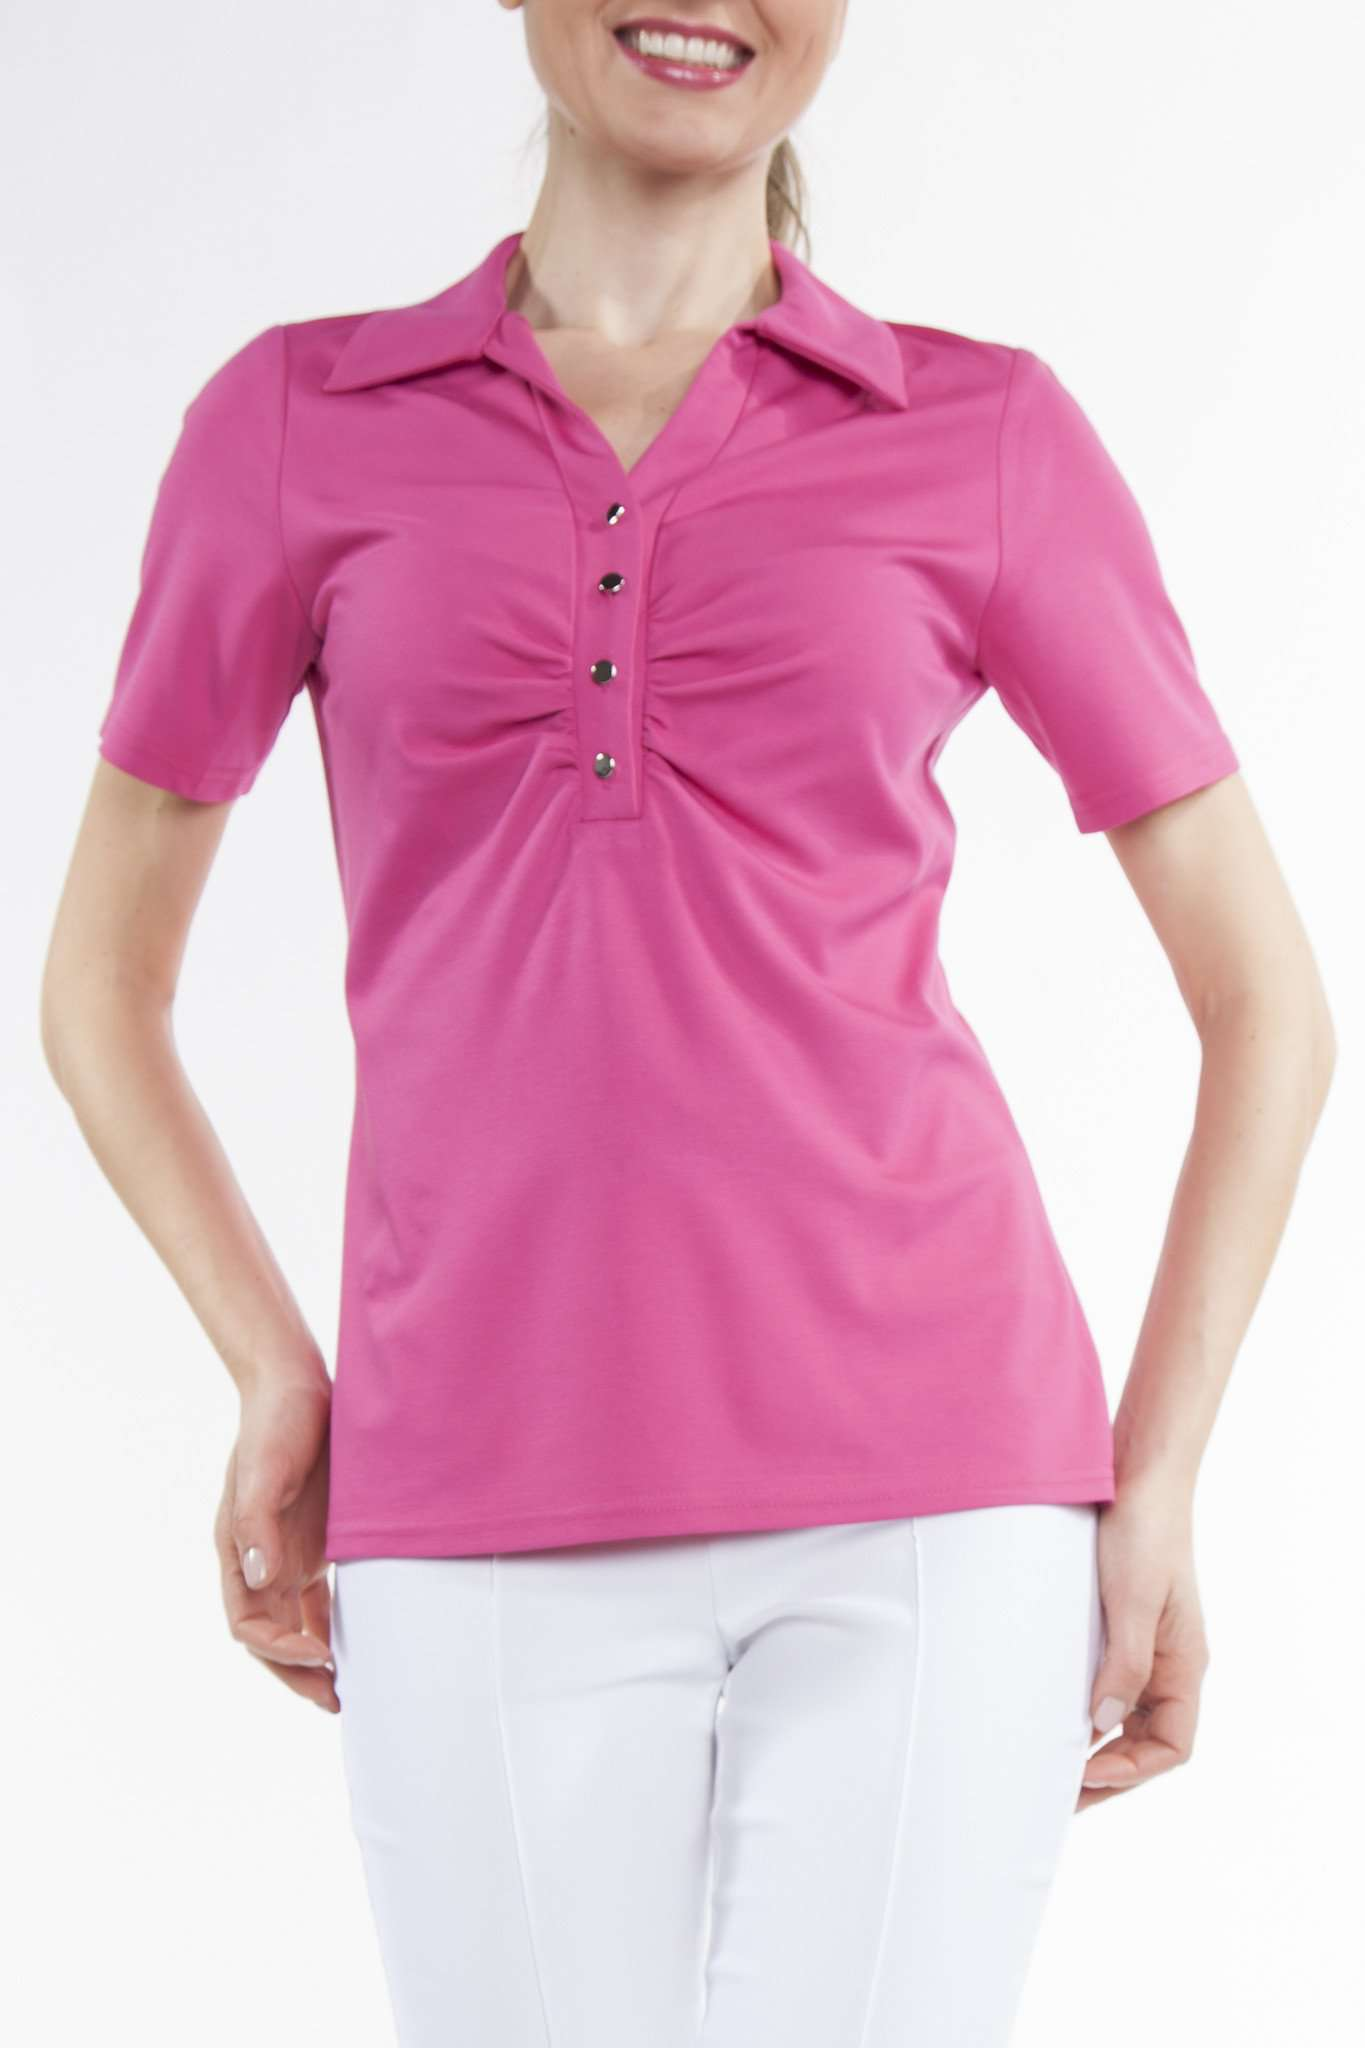 Women's Polo Top Pink with Button Front - Made in Canada - Yvonne Marie - Yvonne Marie